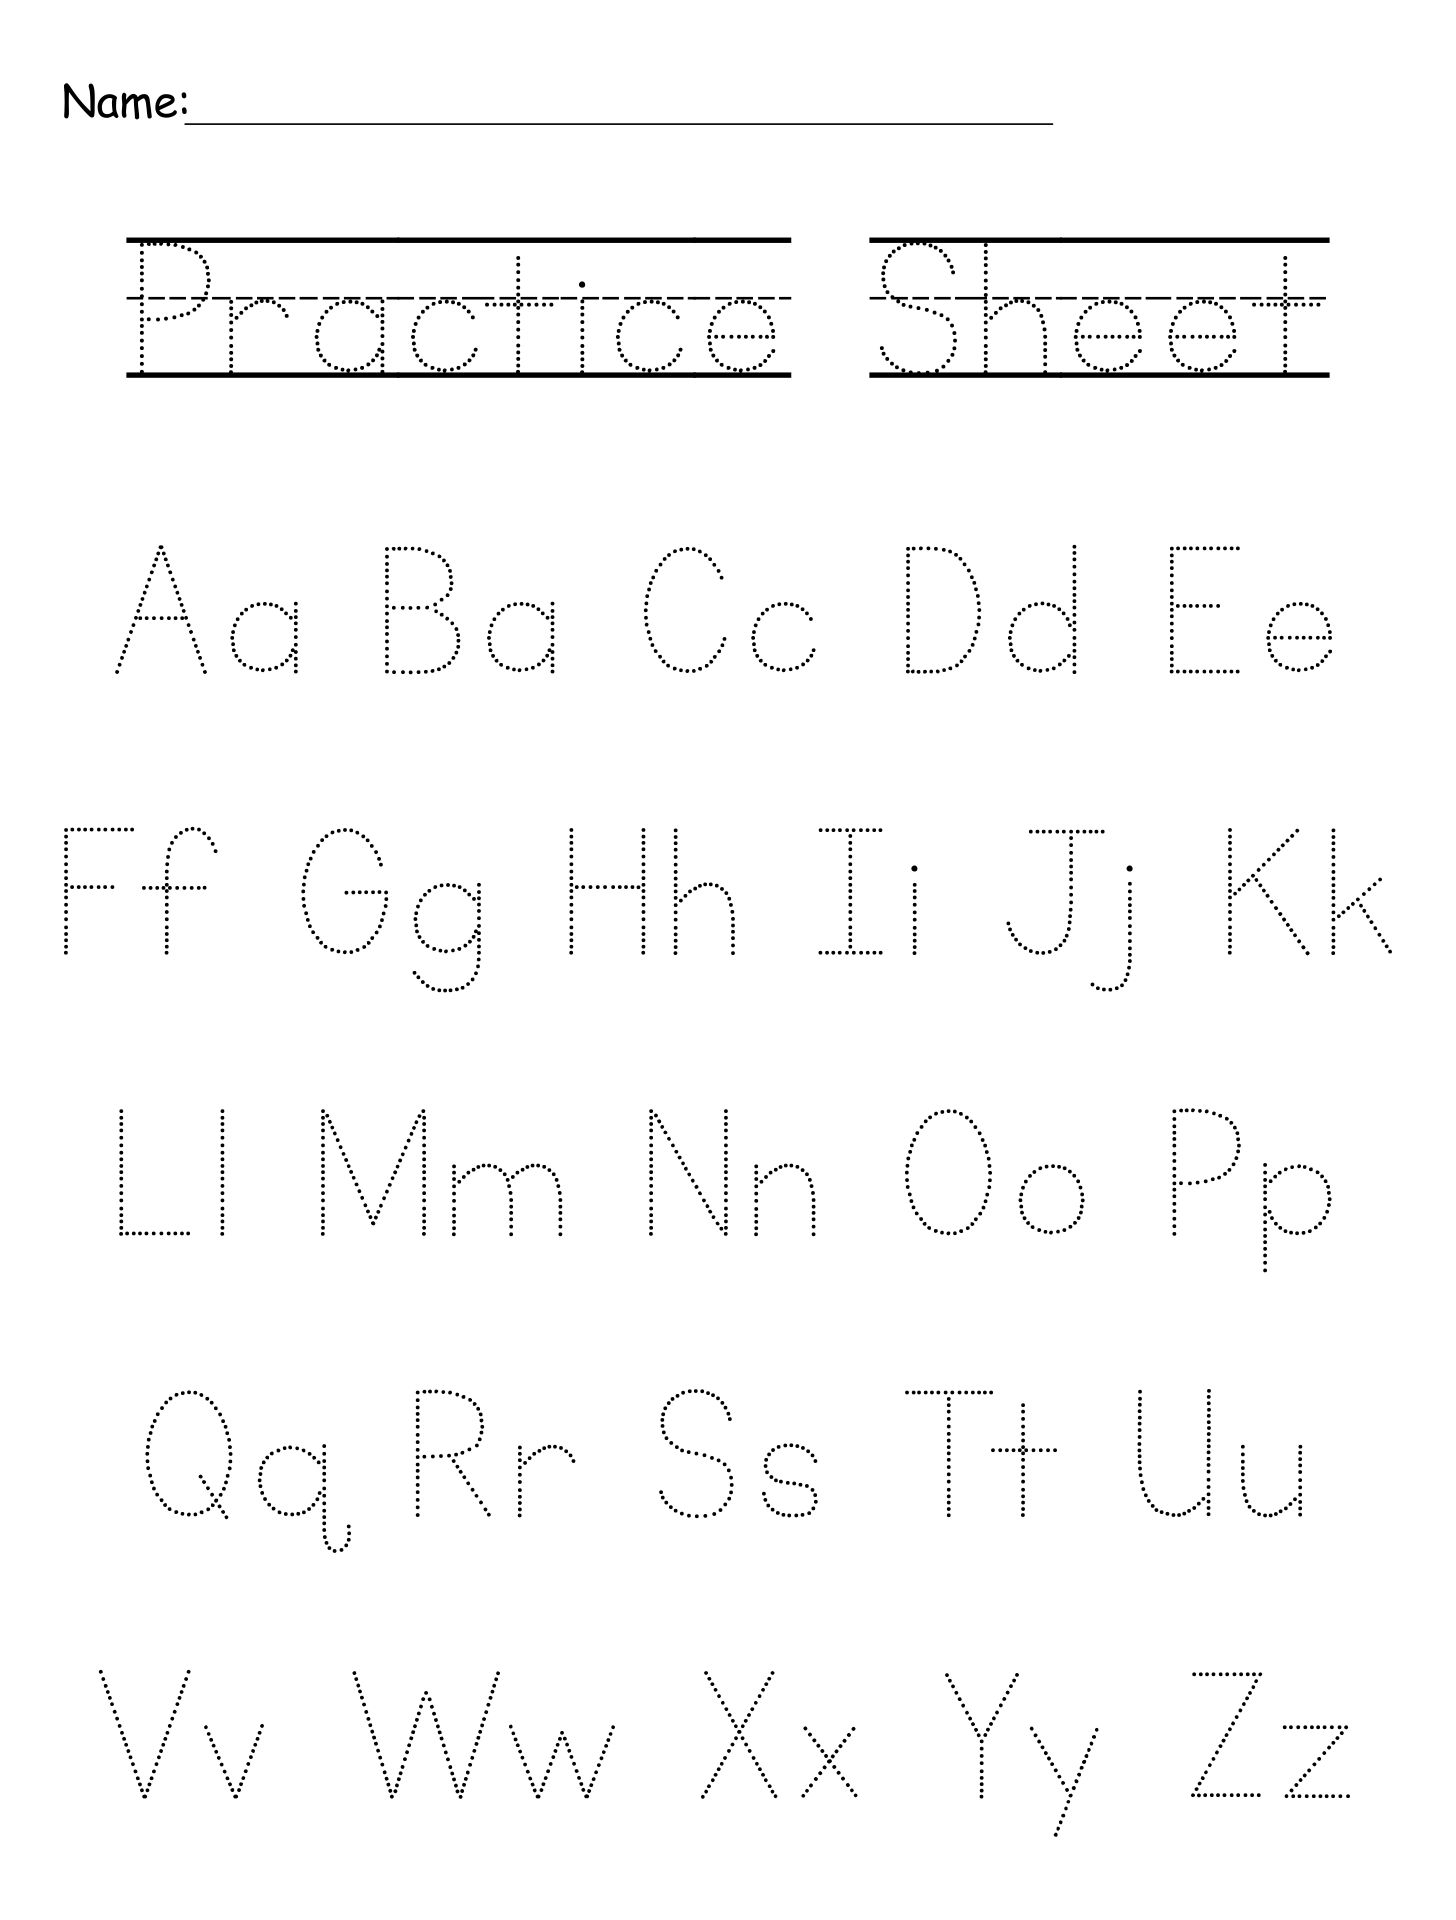 Preschool Worksheet Gallery Preschool Printable Preschool